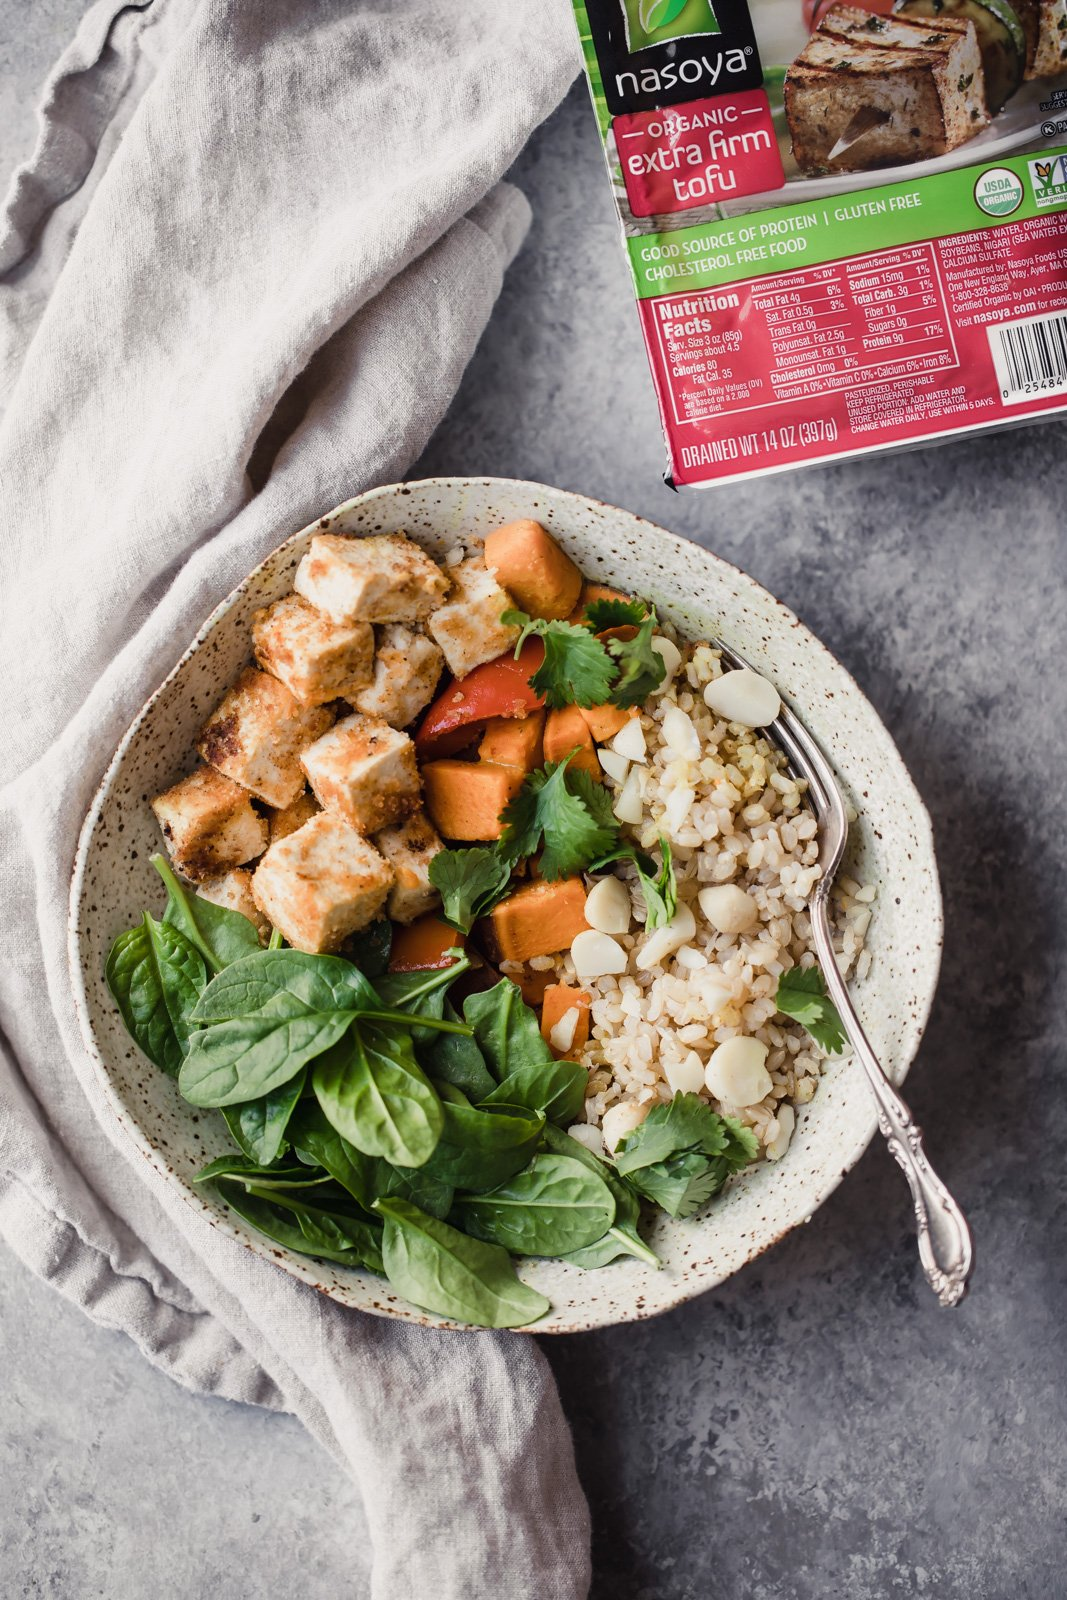 Vegan tofu bowls with spinach and rice